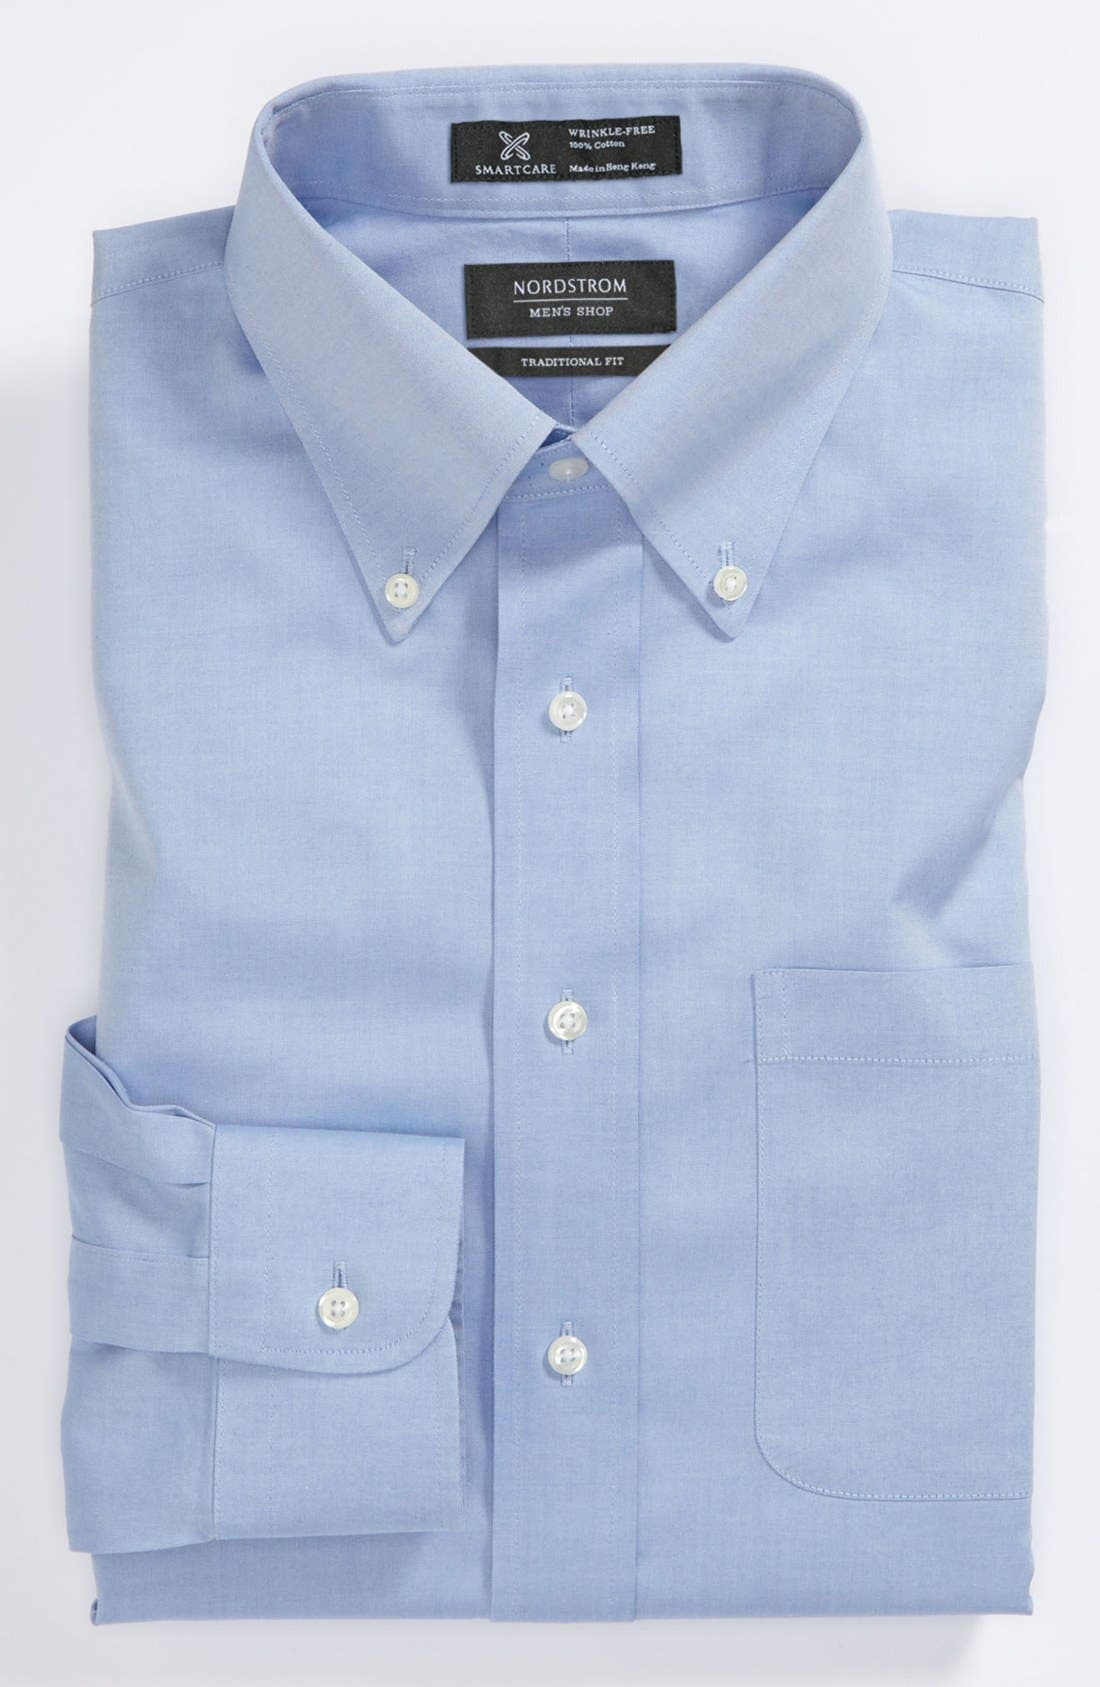 NORDSTROM MENS SHOP Smartcare<sup>™</sup> Traditional Fit Pinpoint Dress Shirt